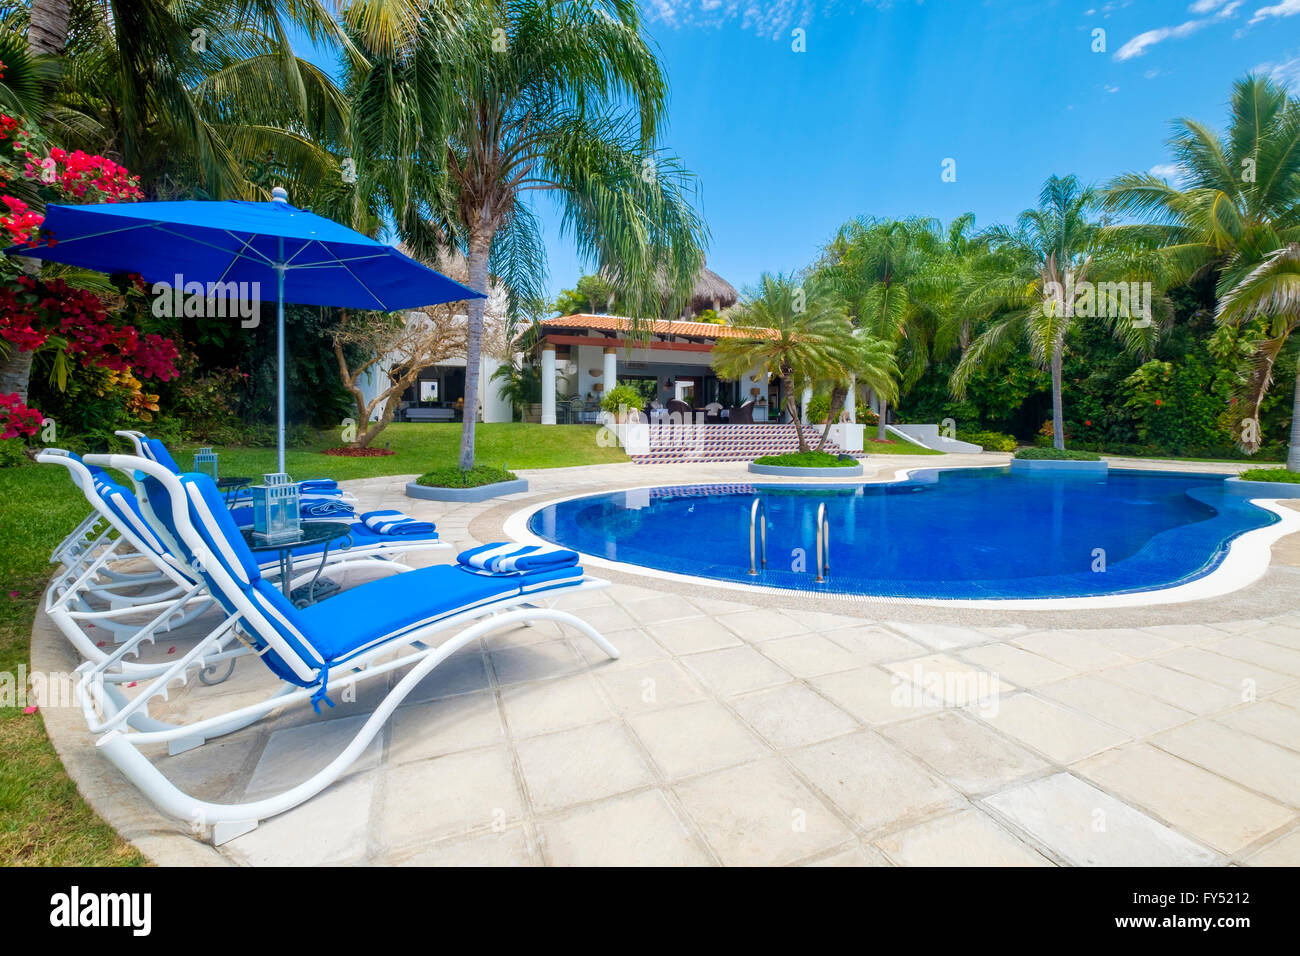 Swimming pool area with lounge chairs and umbrella - Upscale Mexican Residence, Punta de Mita, Riviera Nayarit, - Stock Image